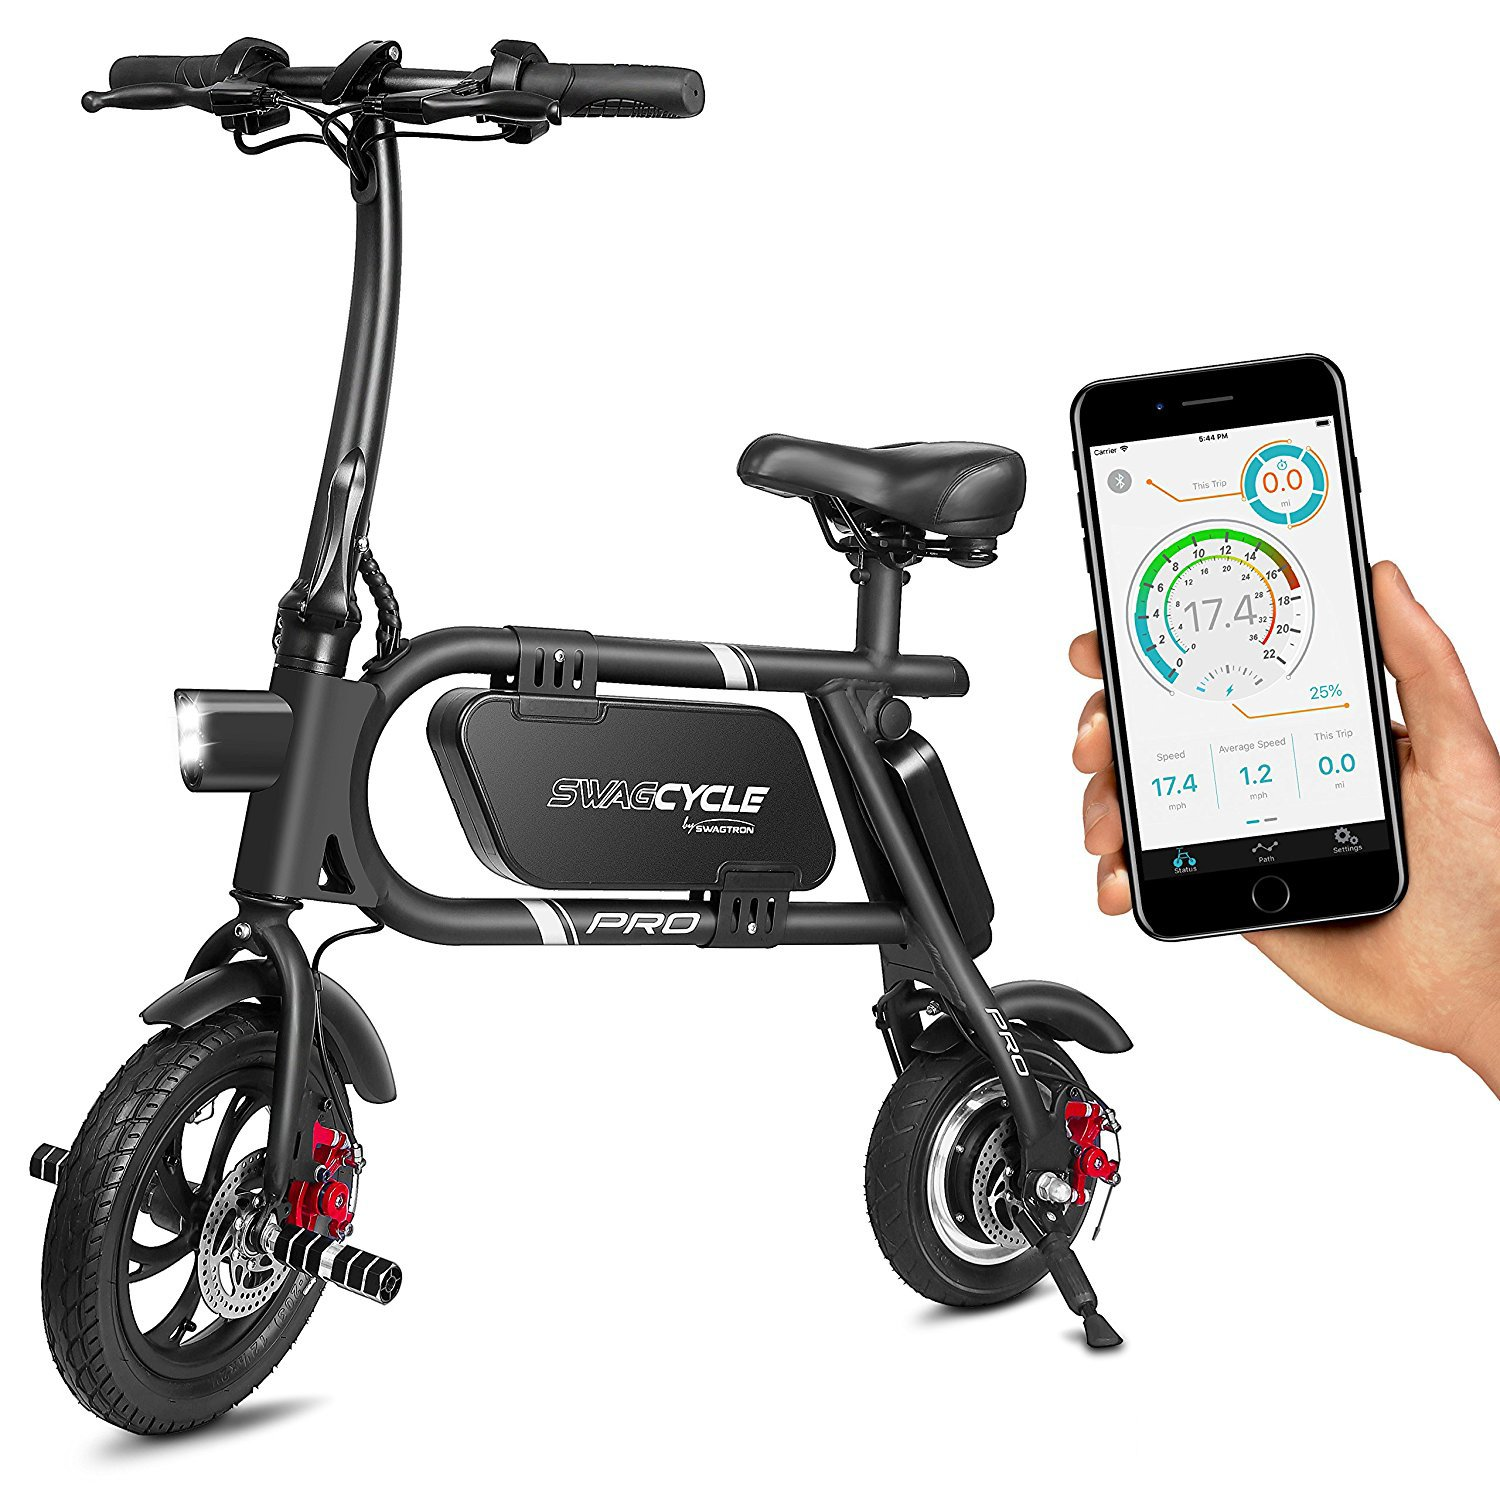 SwagCycle Pro Folding Electric Bike, Pedal Free and App Enabled, 18 mph E Bike with USB Port to Charge on The Go (Black) by Swagtron